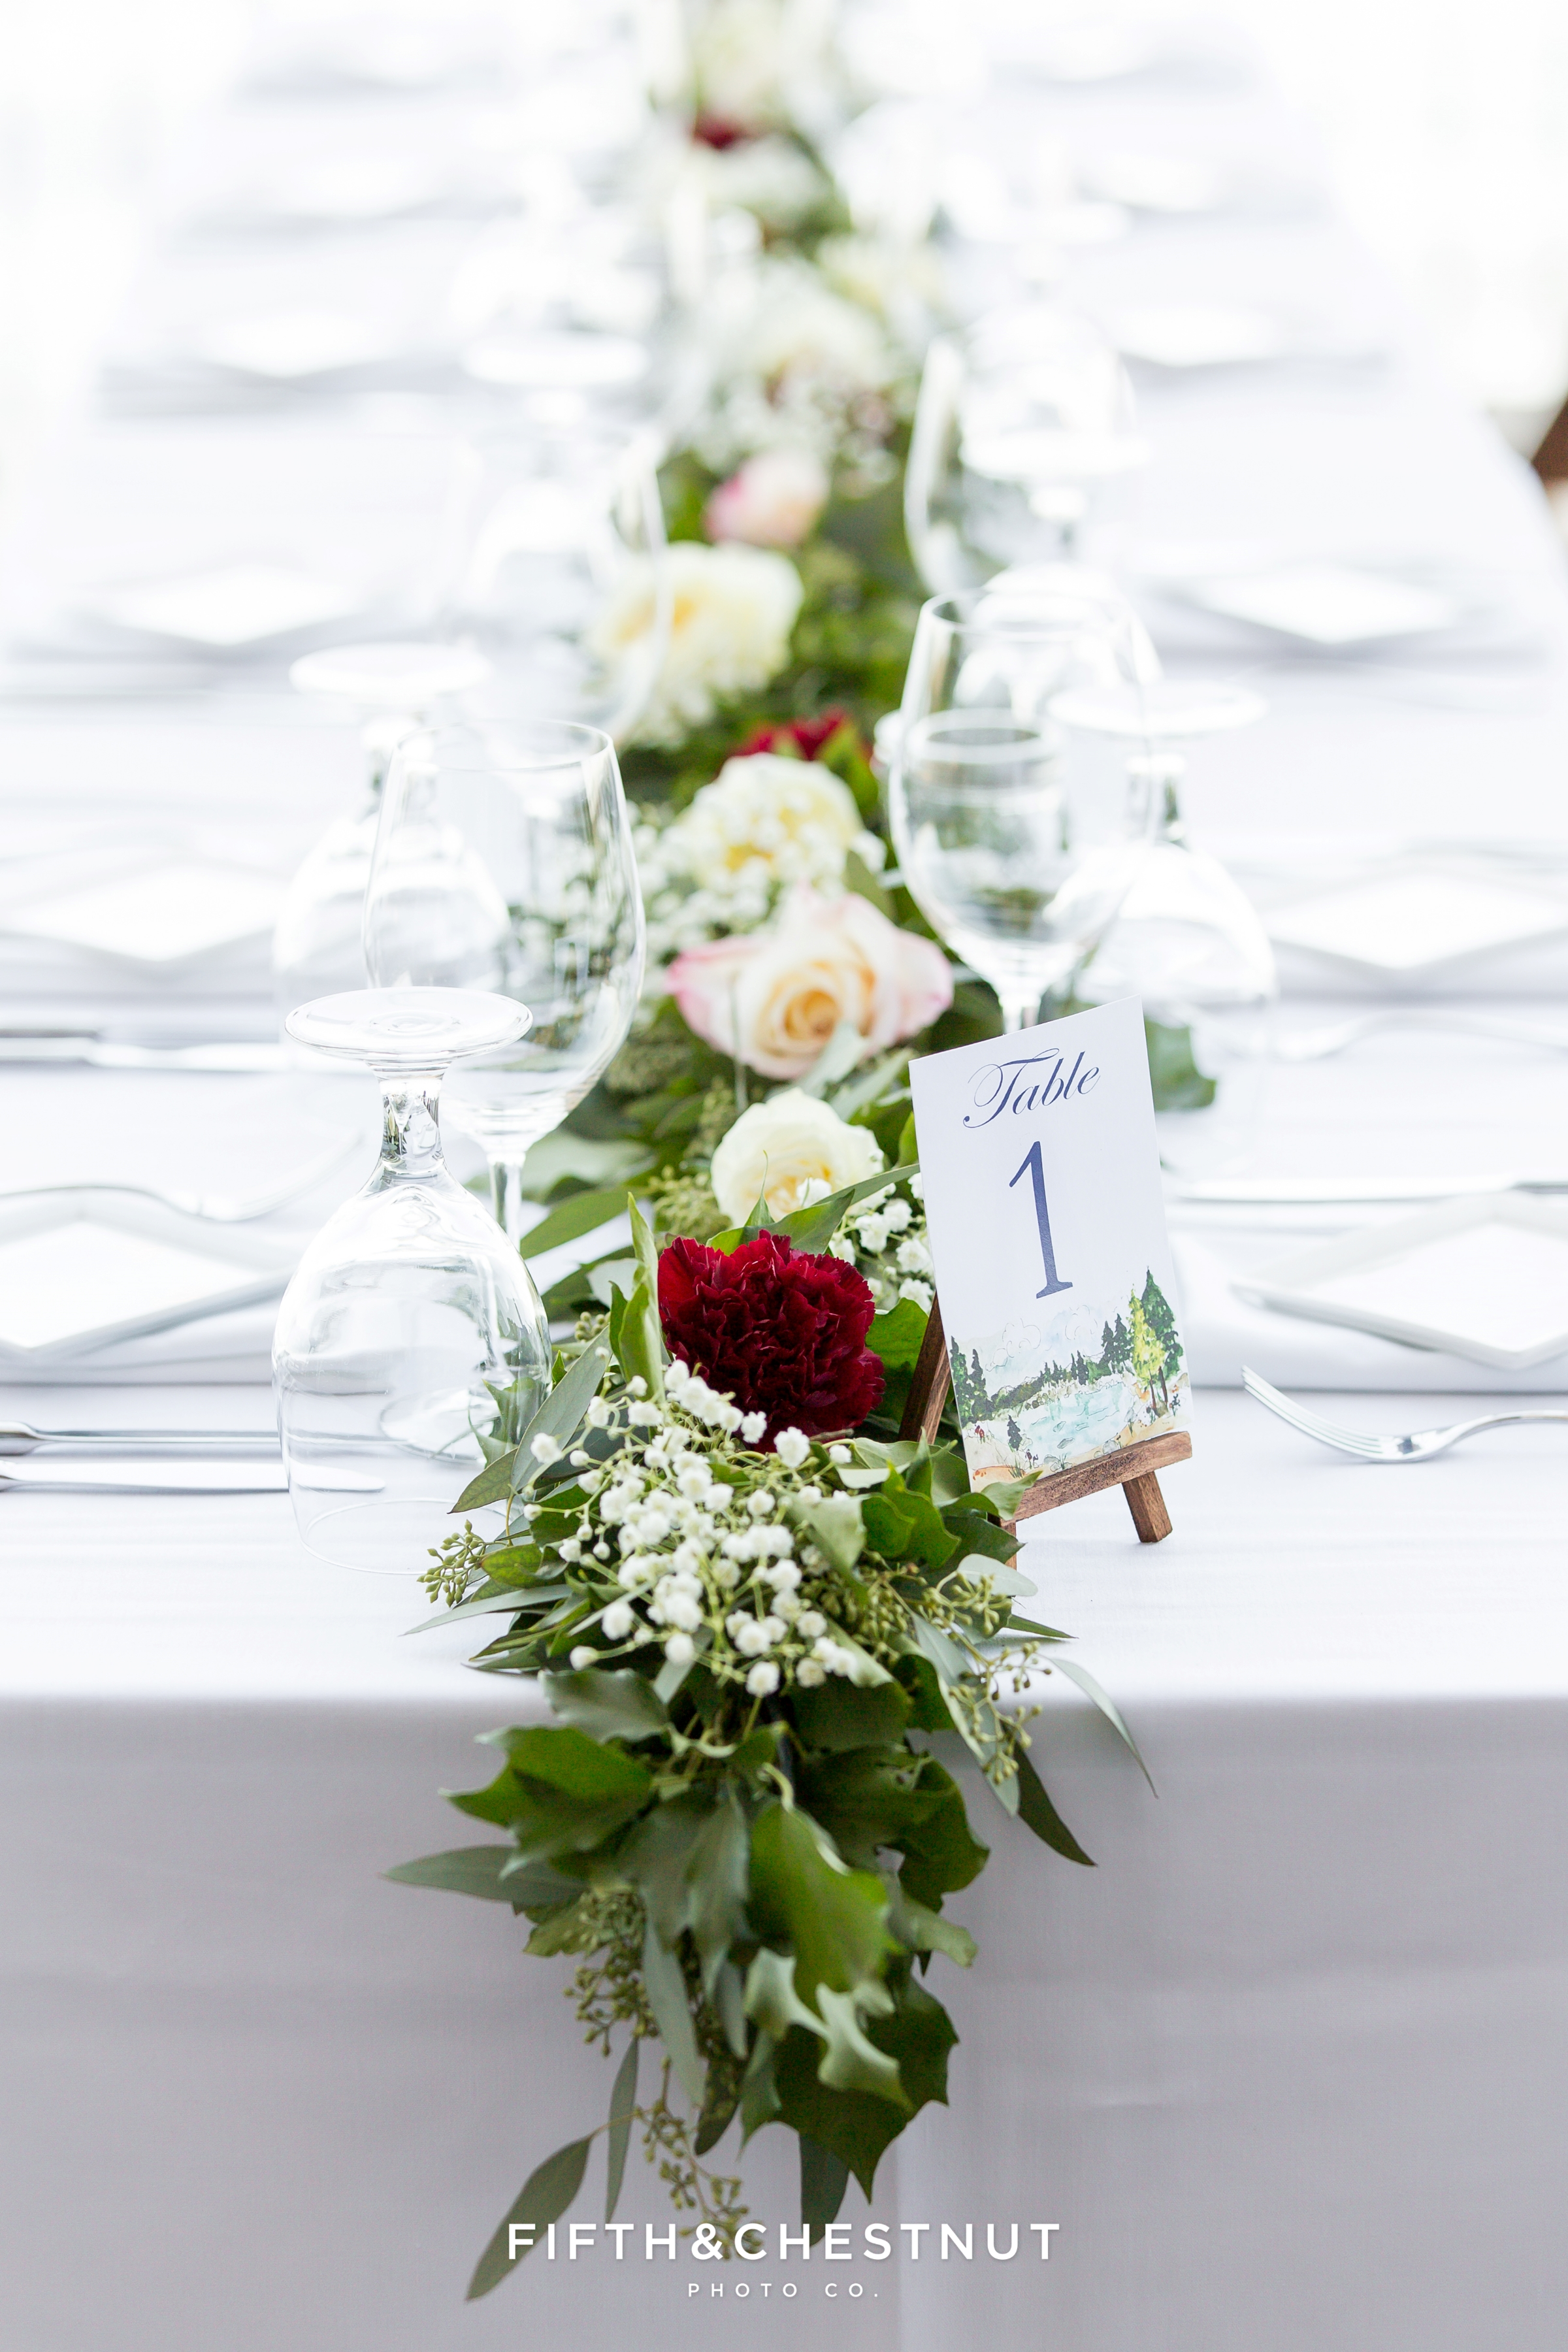 A_Floral_Affair_Gardnerville_Tahoe_Reno_Wedding_Florist_Reception_Centerpiece (7)